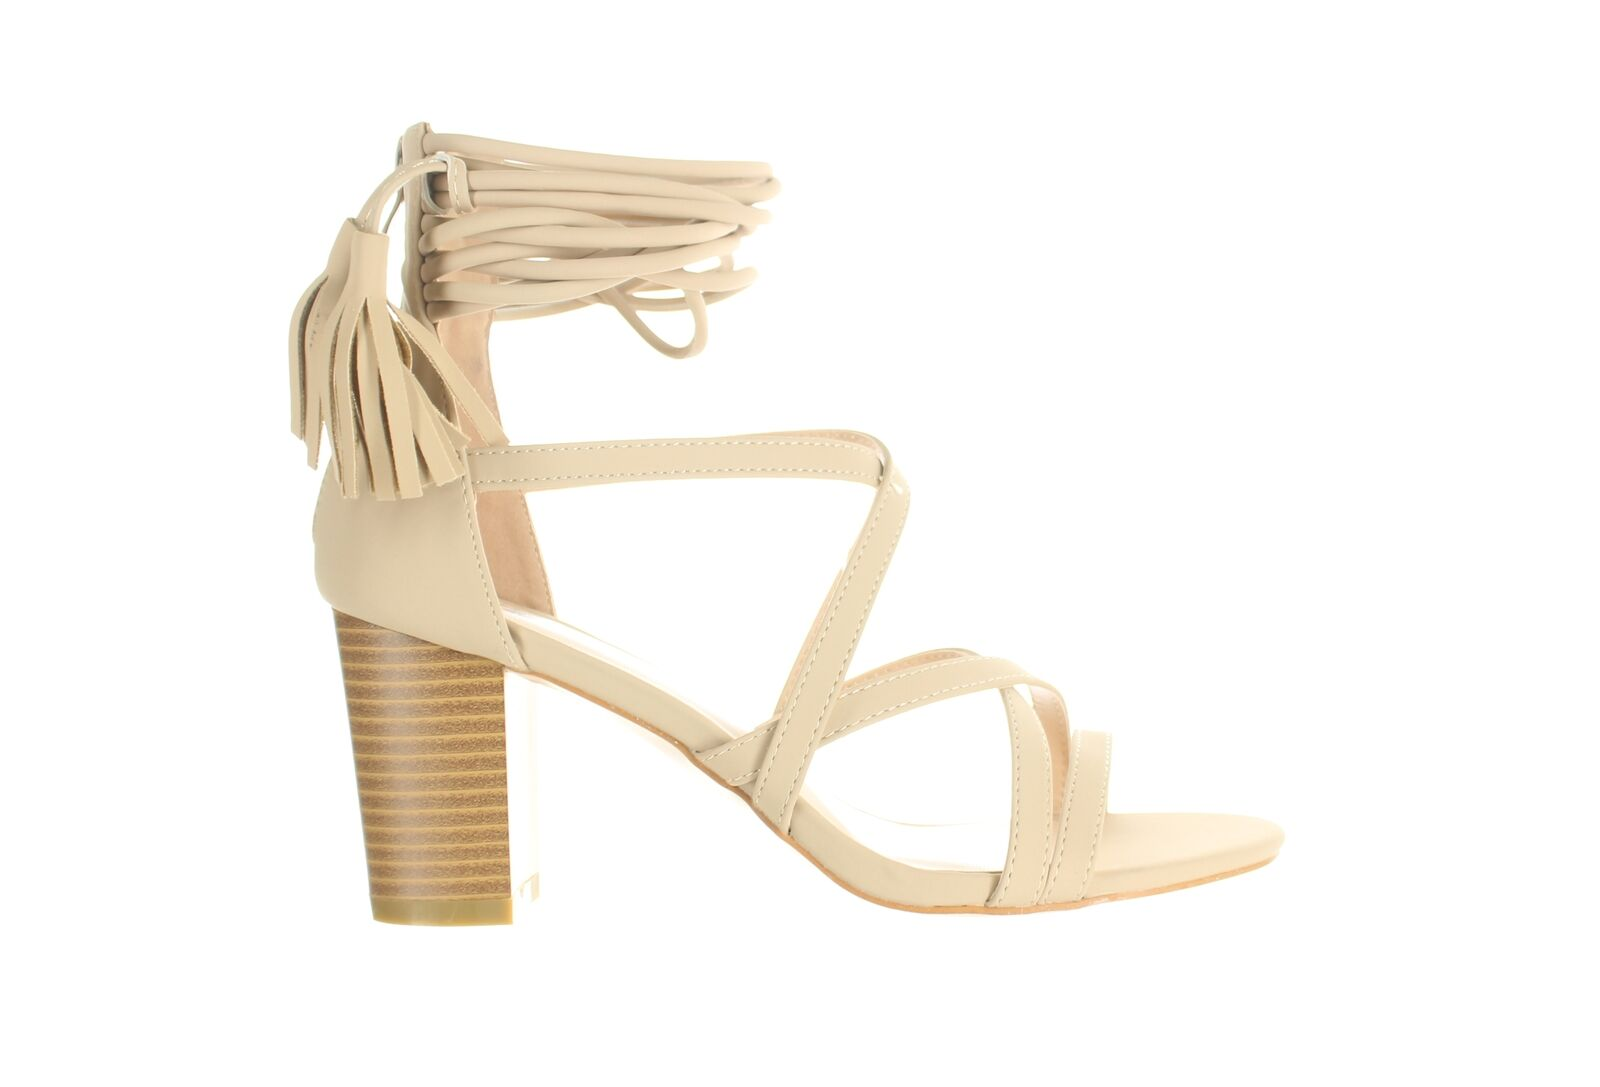 Journee Collection Womens Ruthie Nude Ankle Strap Heels Size 6.5 (1976614)